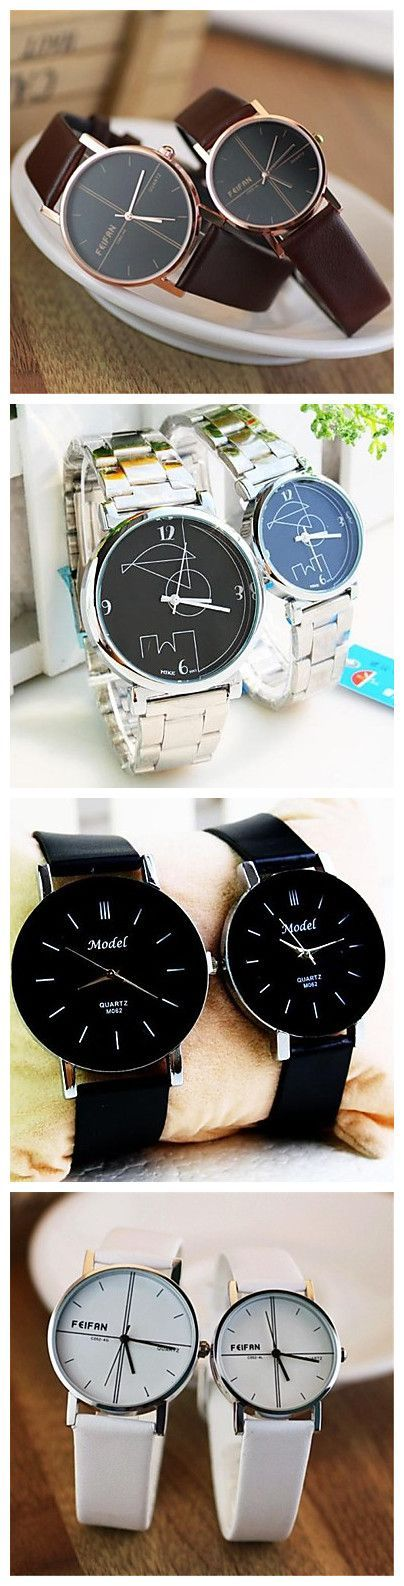 Customize the personalized couple watches with your own unique design on SnapMade.com.